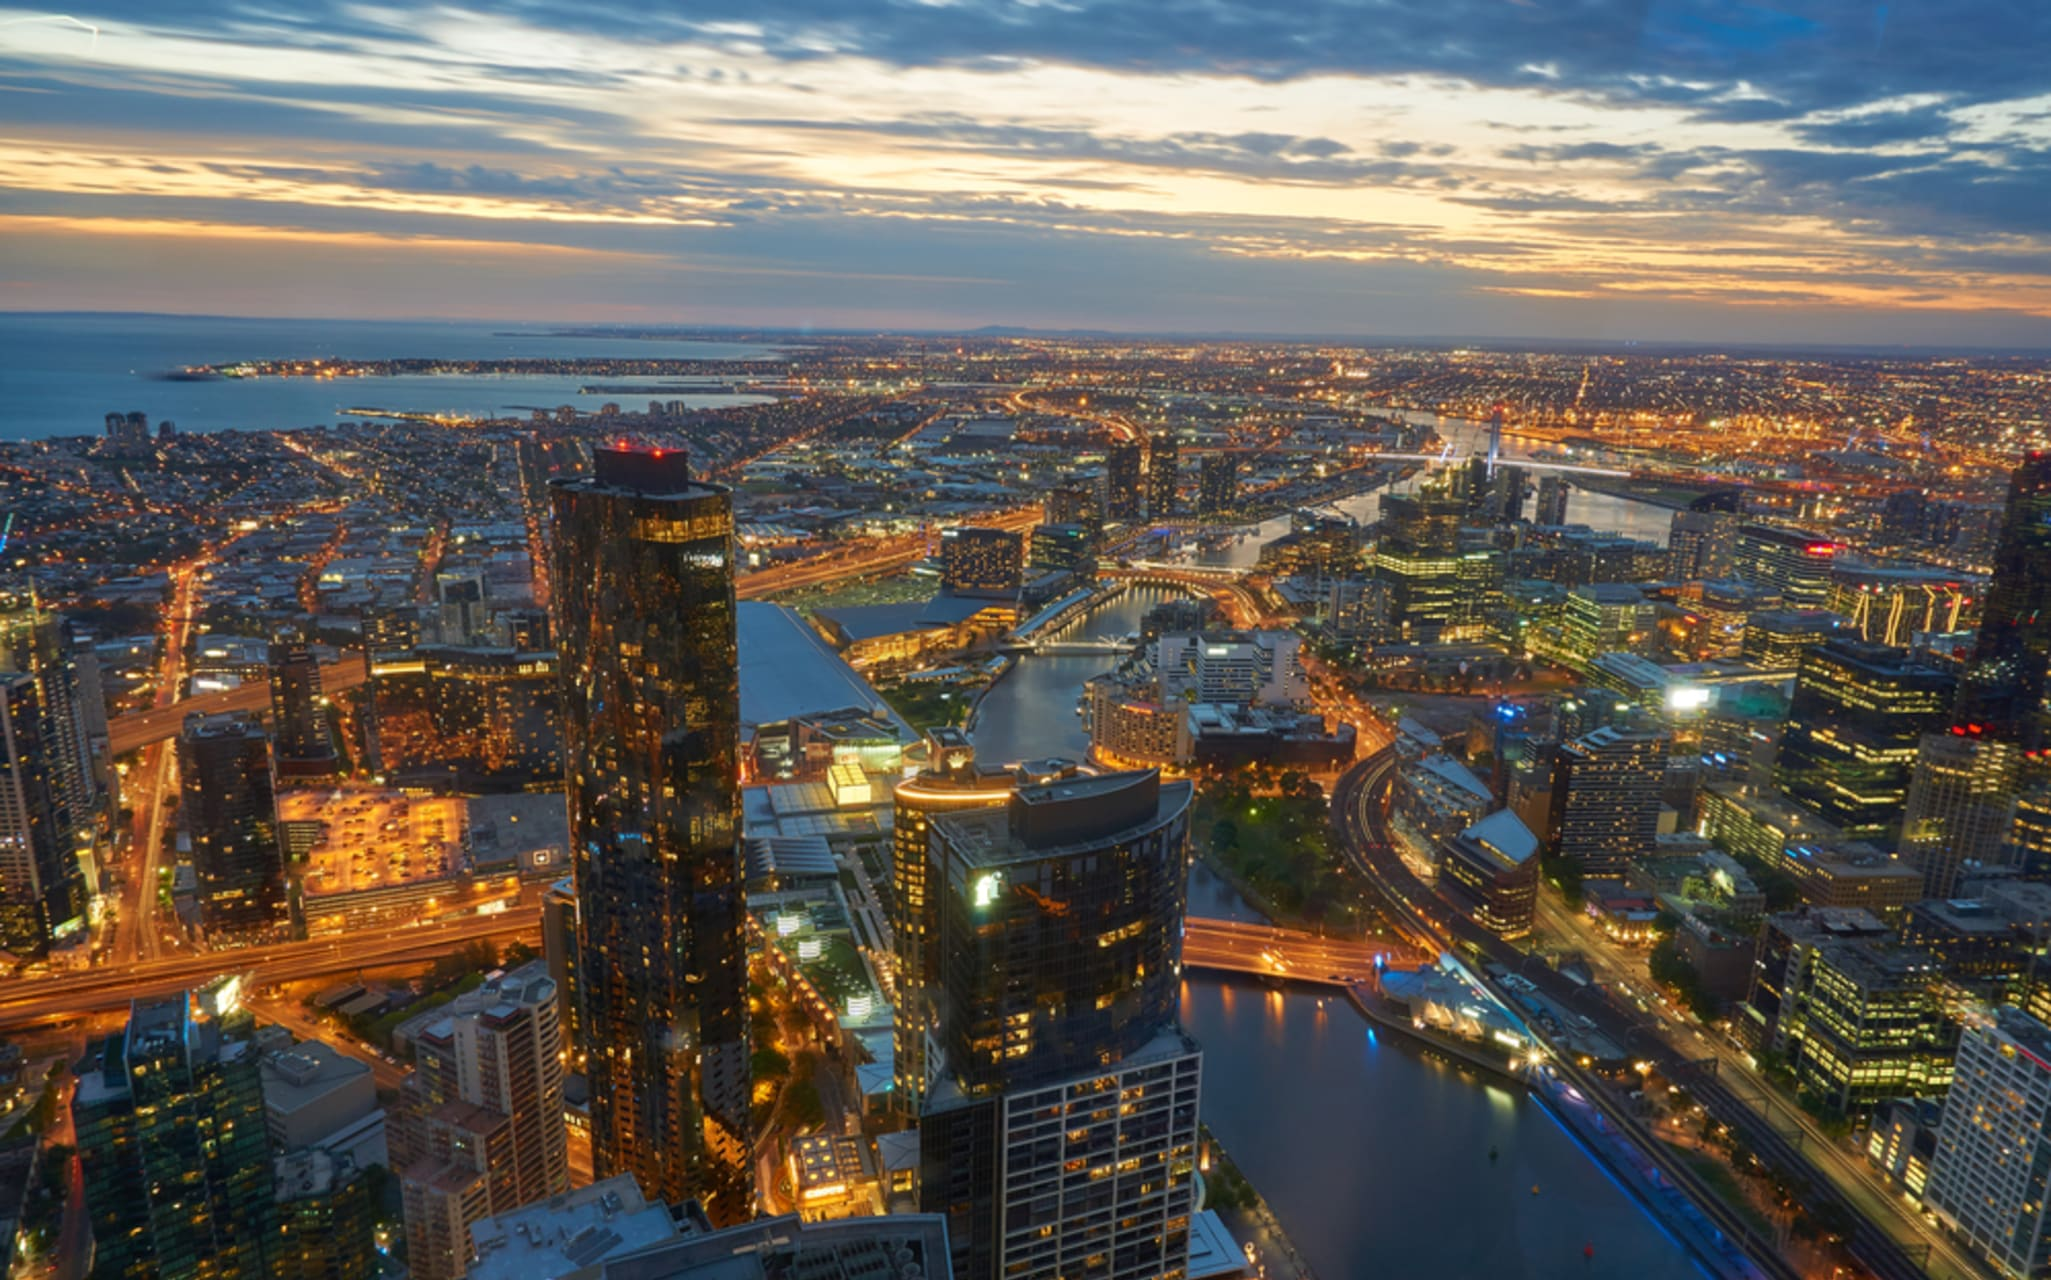 Melbourne - Stunning Sunset and View From the Top Of Eureka Tower